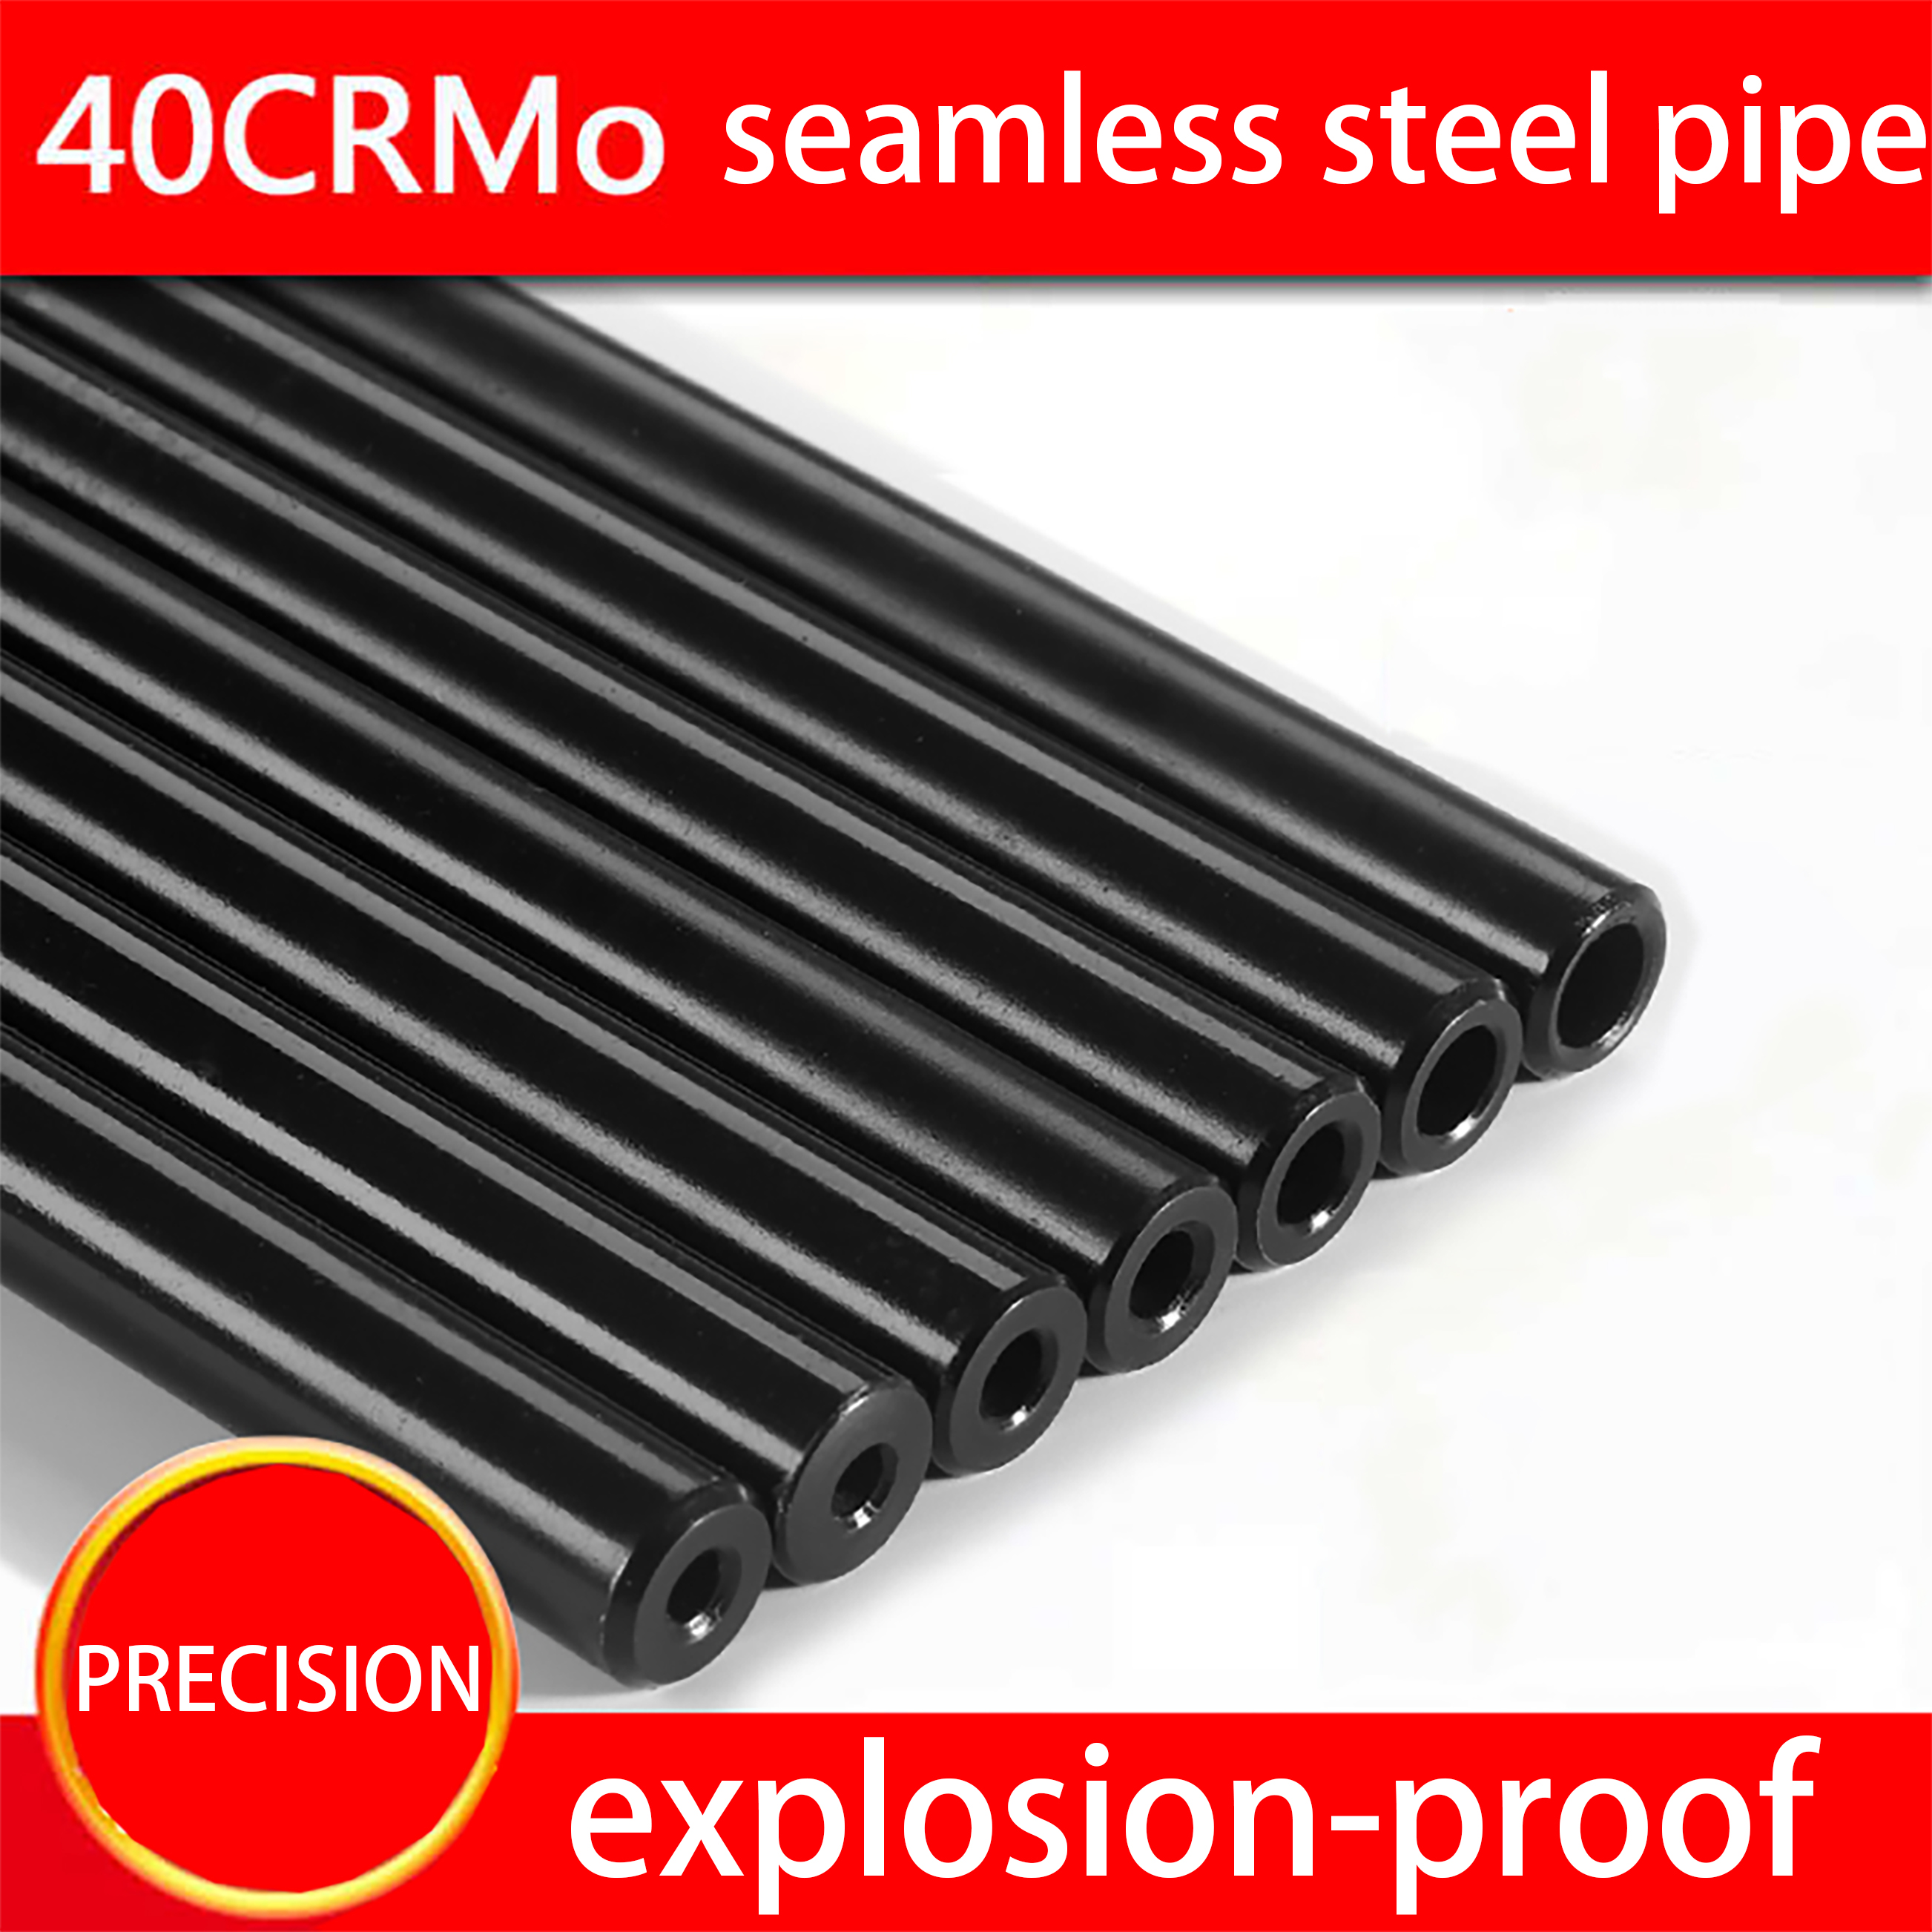 16mm Seamless Steel Pipe Hydraulic Boiler Explosion-proof Seamless Steel Tube for Home DIY High Pressure Alloy Precision Pipe